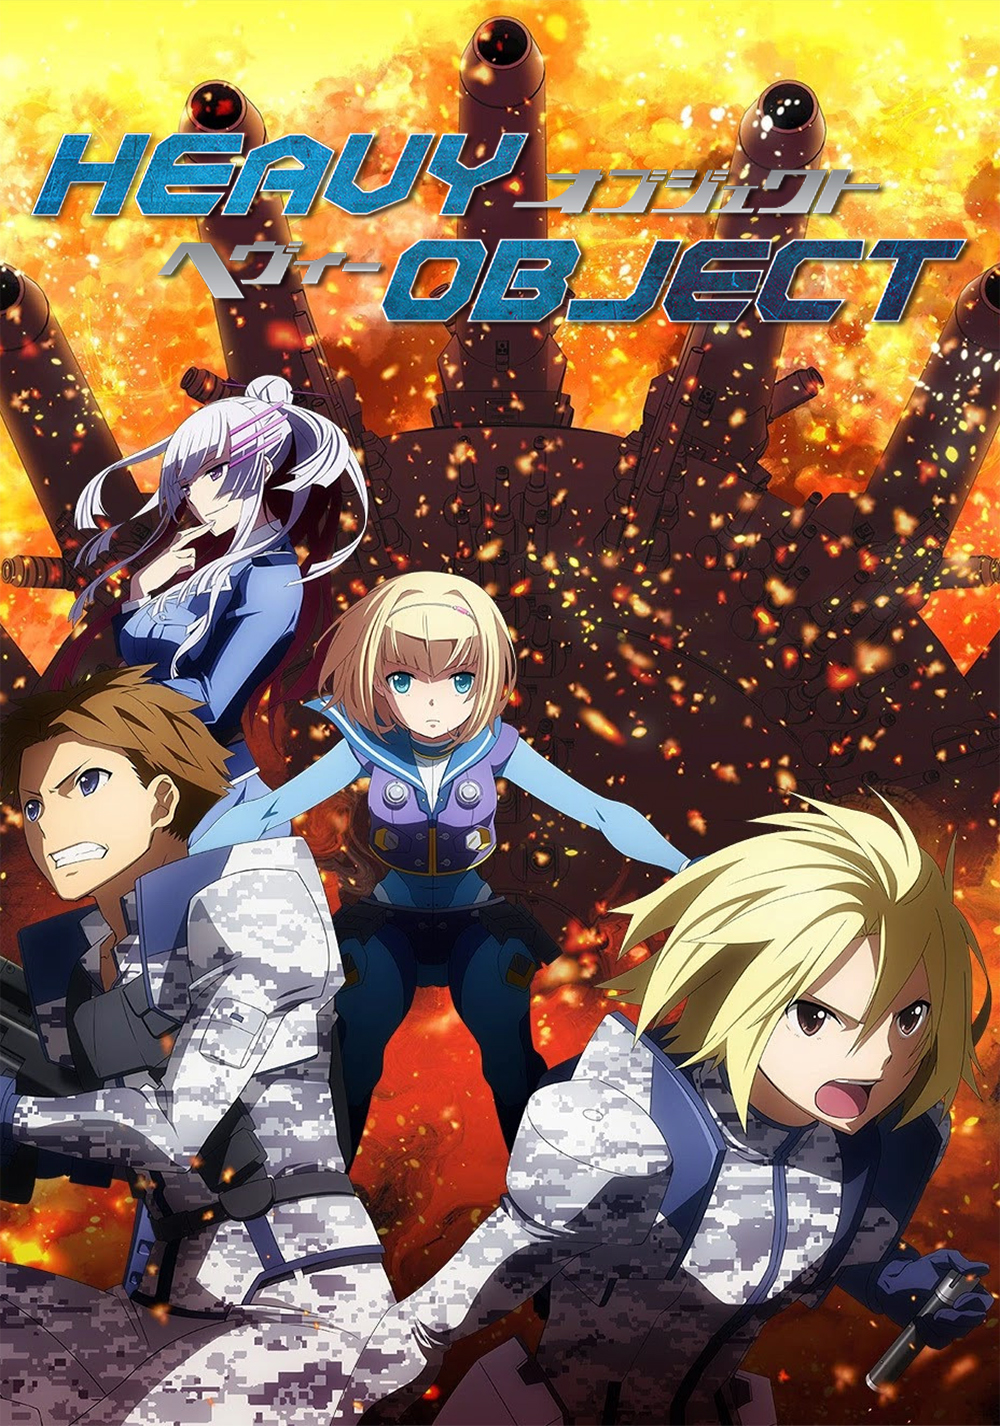 Heavy Object kapak